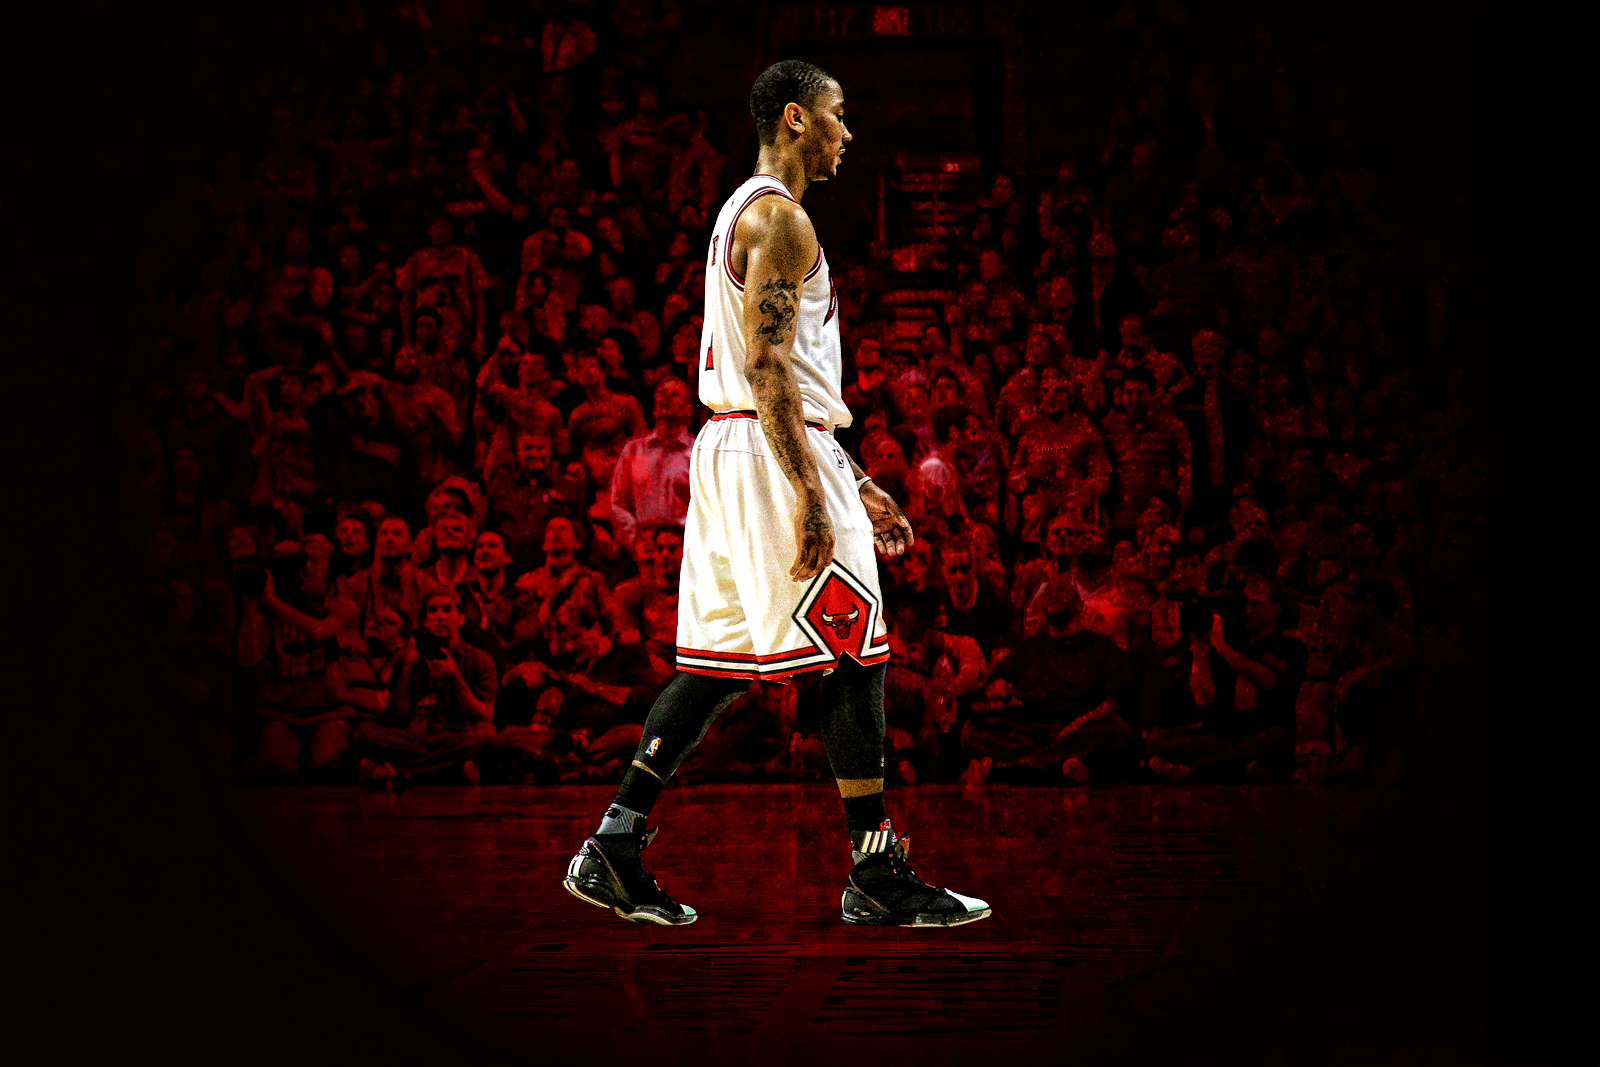 derrick rose wallpaper 1600x1067